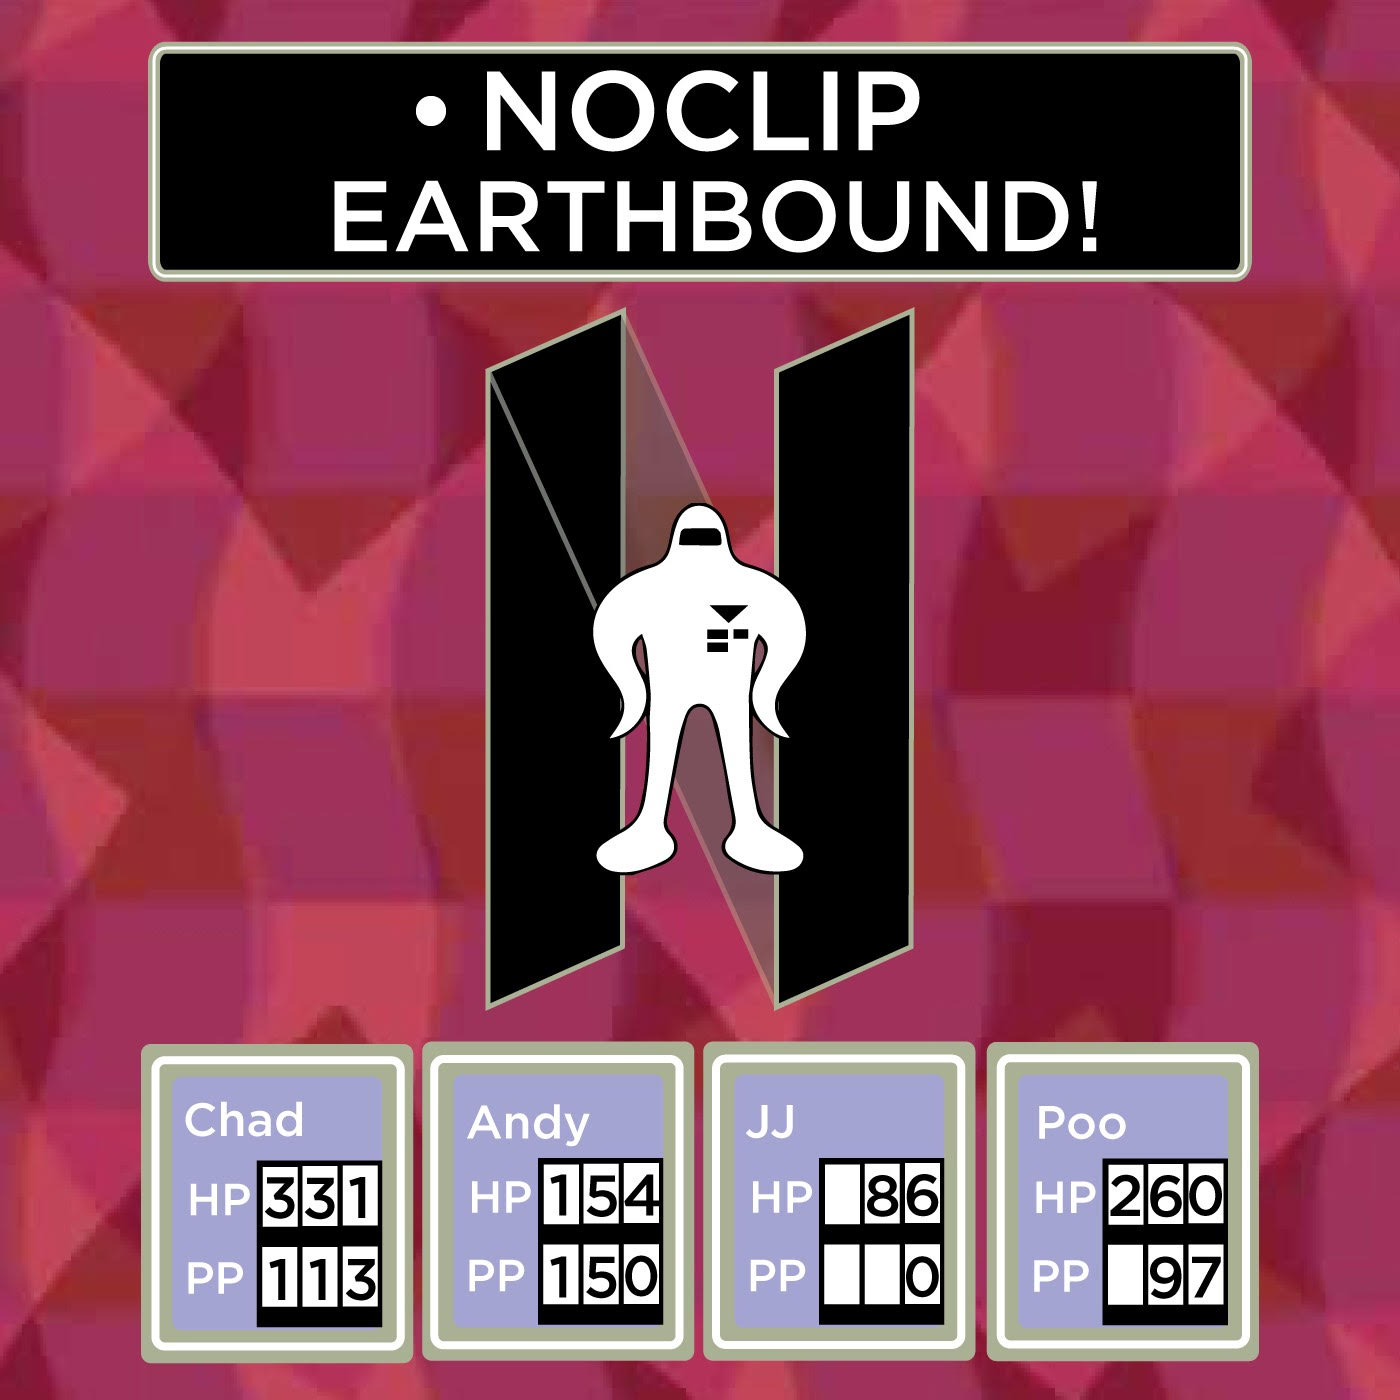 Episode 36 - Number One Womb - Earthbound — NOCLIP